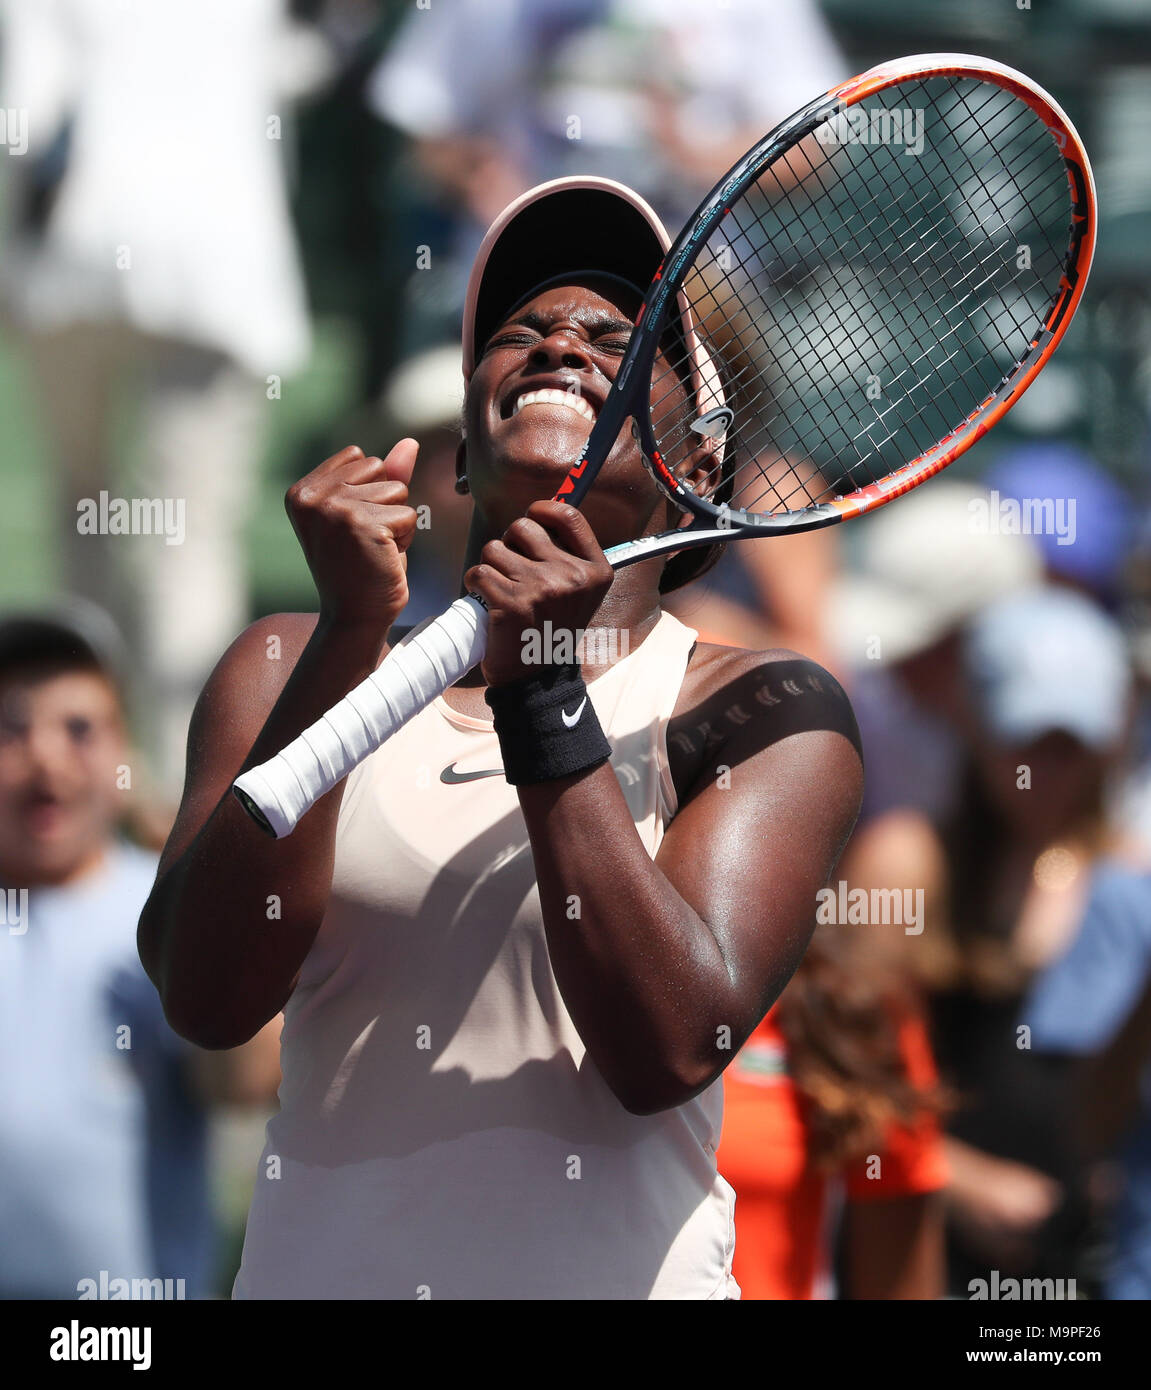 Key Biscayne, Florida, USA. 27th Mar, 2018. Sloane Stephens of the United States shows her emotions as she celebrates defeating Angelique Kerber of Germany in a quarterfinal on Day 10 of the 2018 Miami Open presented by Itau professional tennis tournament, played at the Crandon Park Tennis Center in Key Biscayne, Florida, USA. Stephens won 6-1, 6-2. Mario Houben/CSM/Alamy Live News - Stock Image